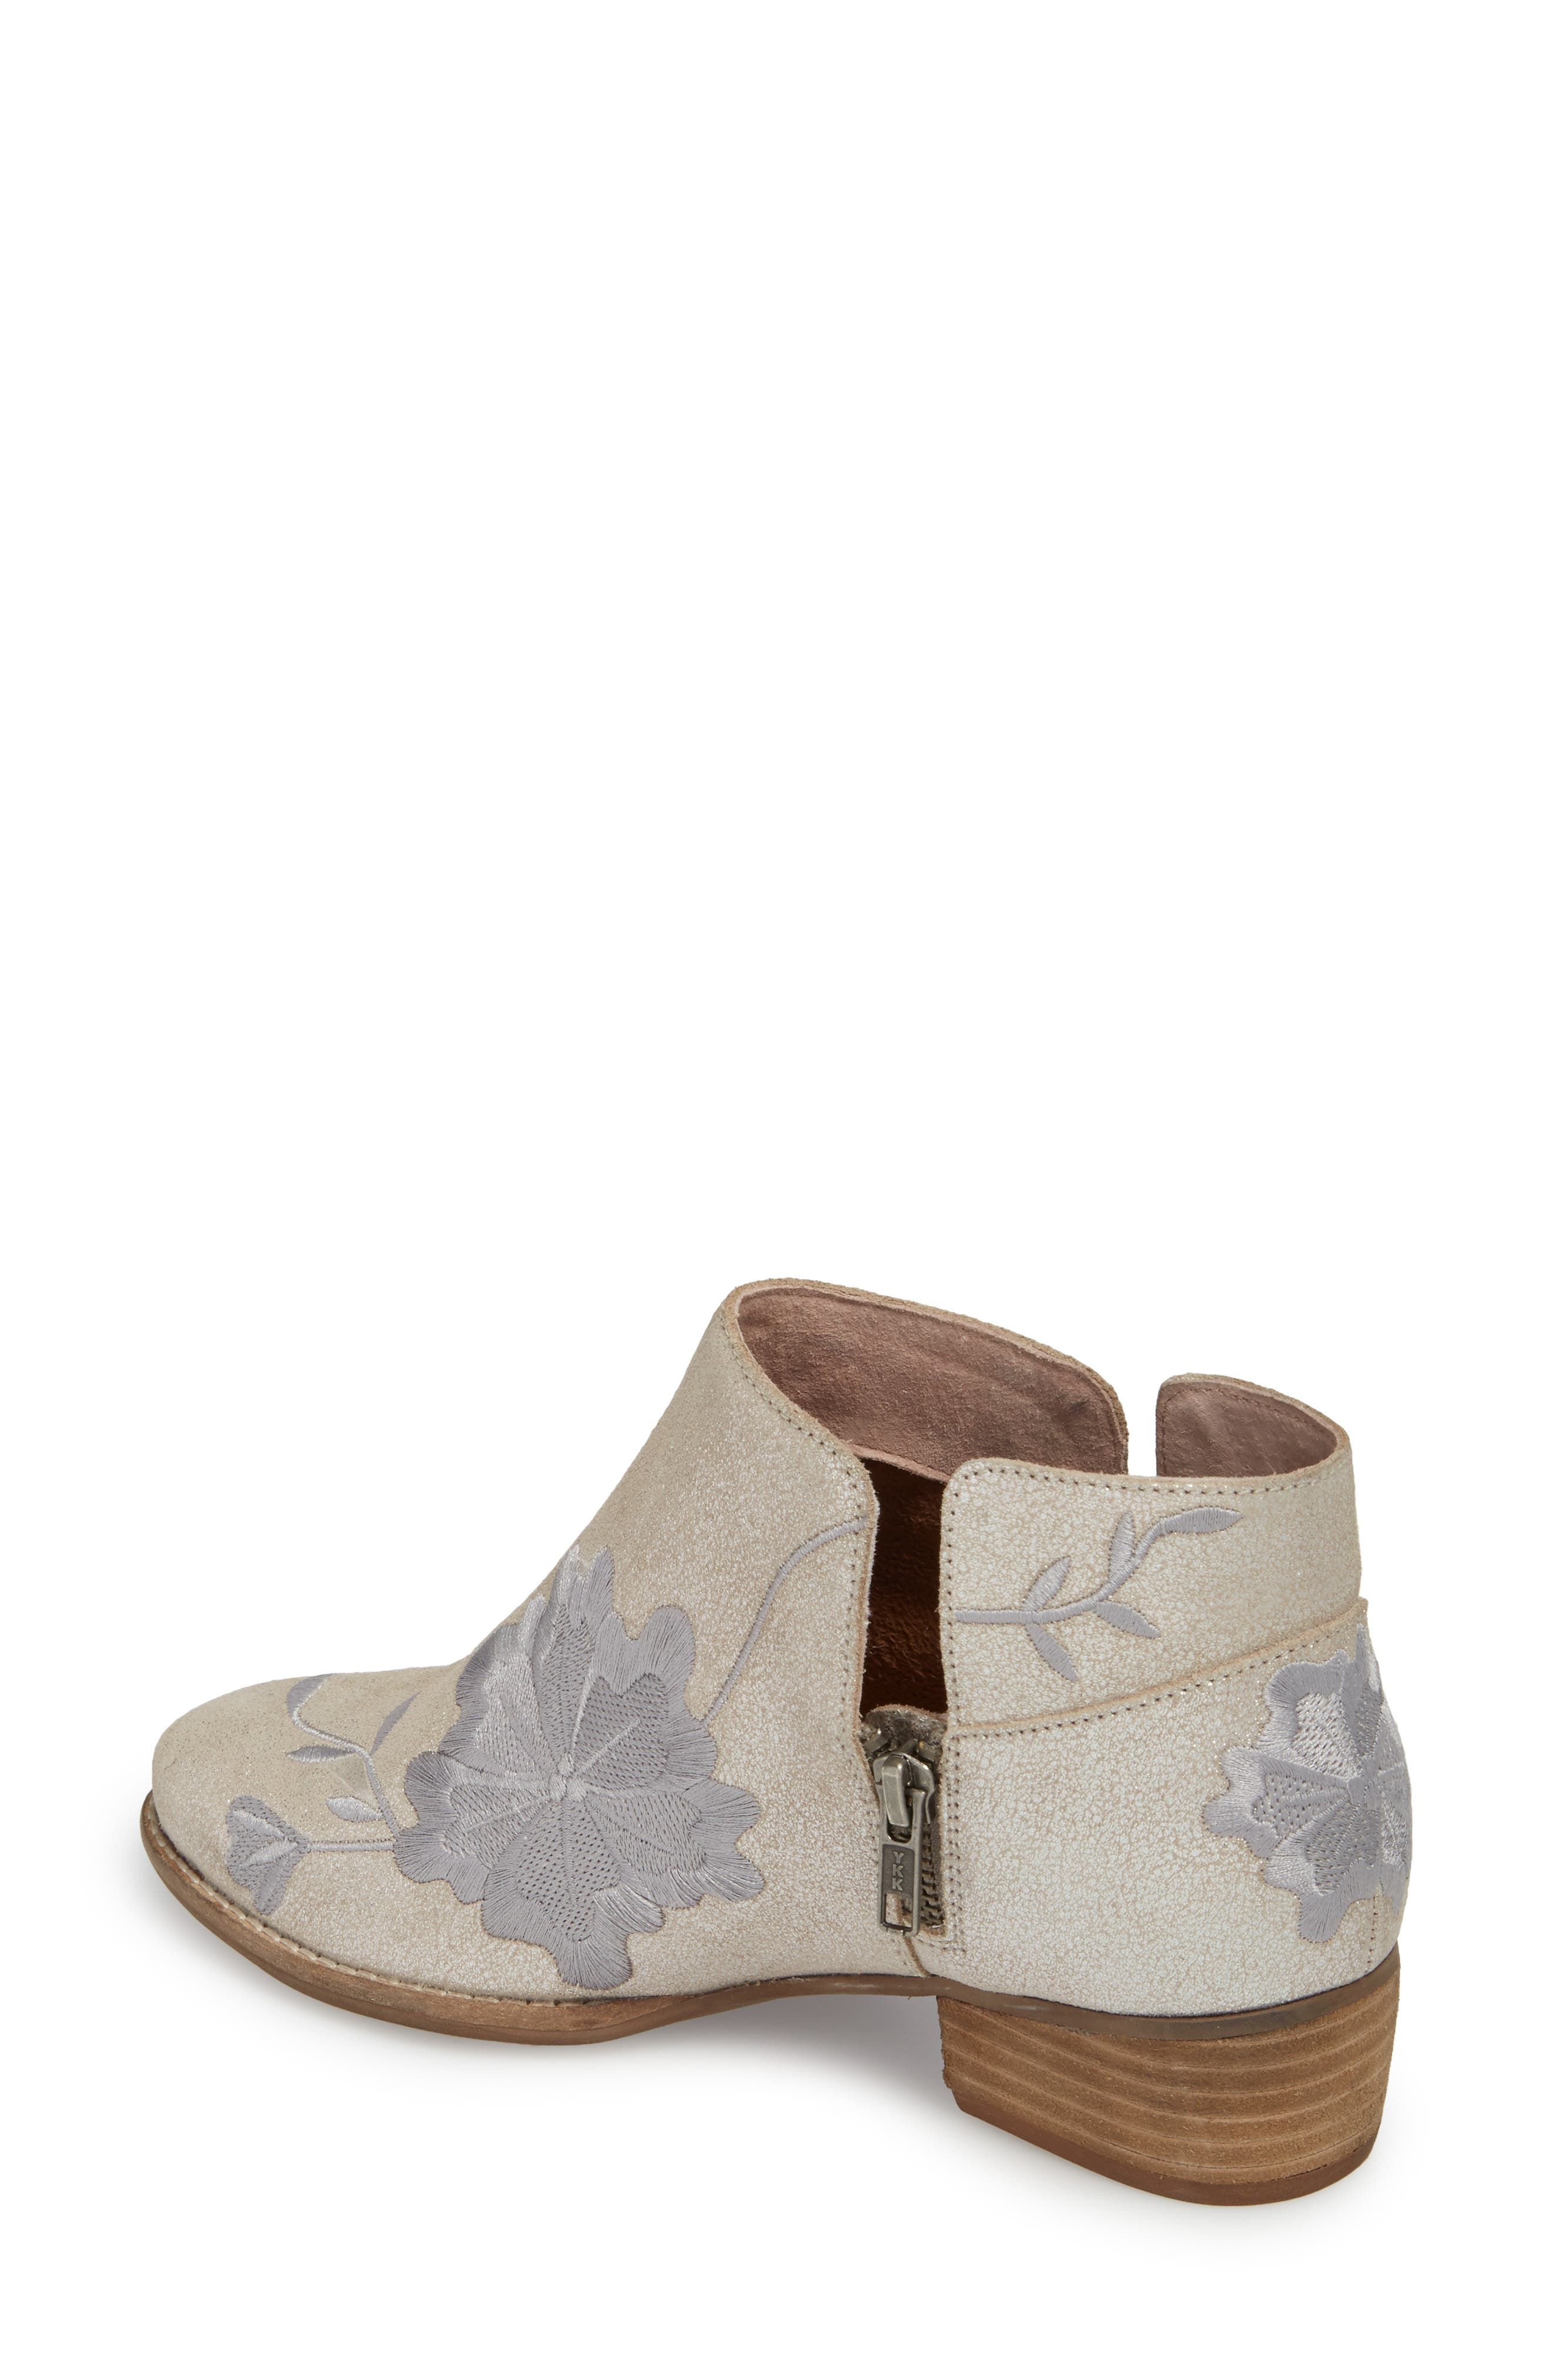 Lantern Embroidered Short Bootie,                             Alternate thumbnail 2, color,                             SILVER SUEDE